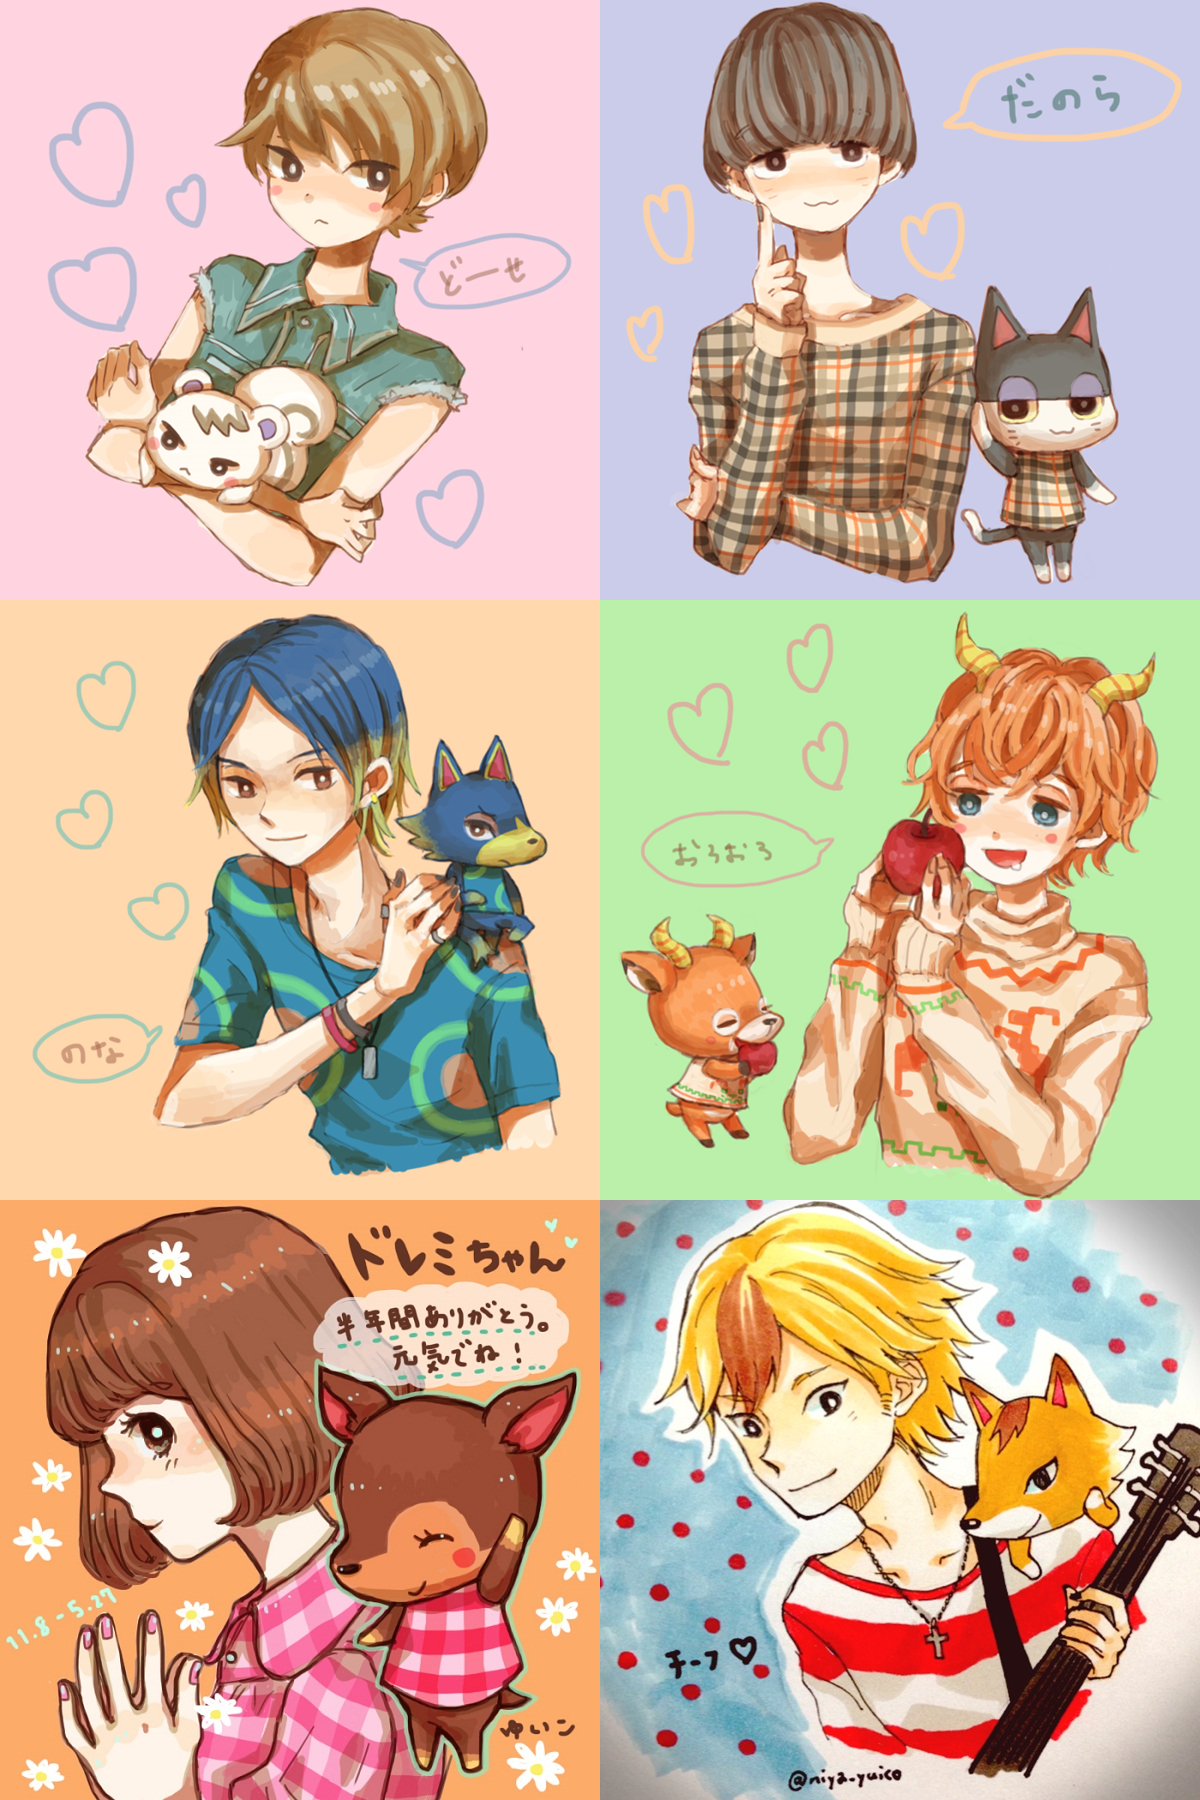 Animal Crossing New Leaf characters drawn as humans